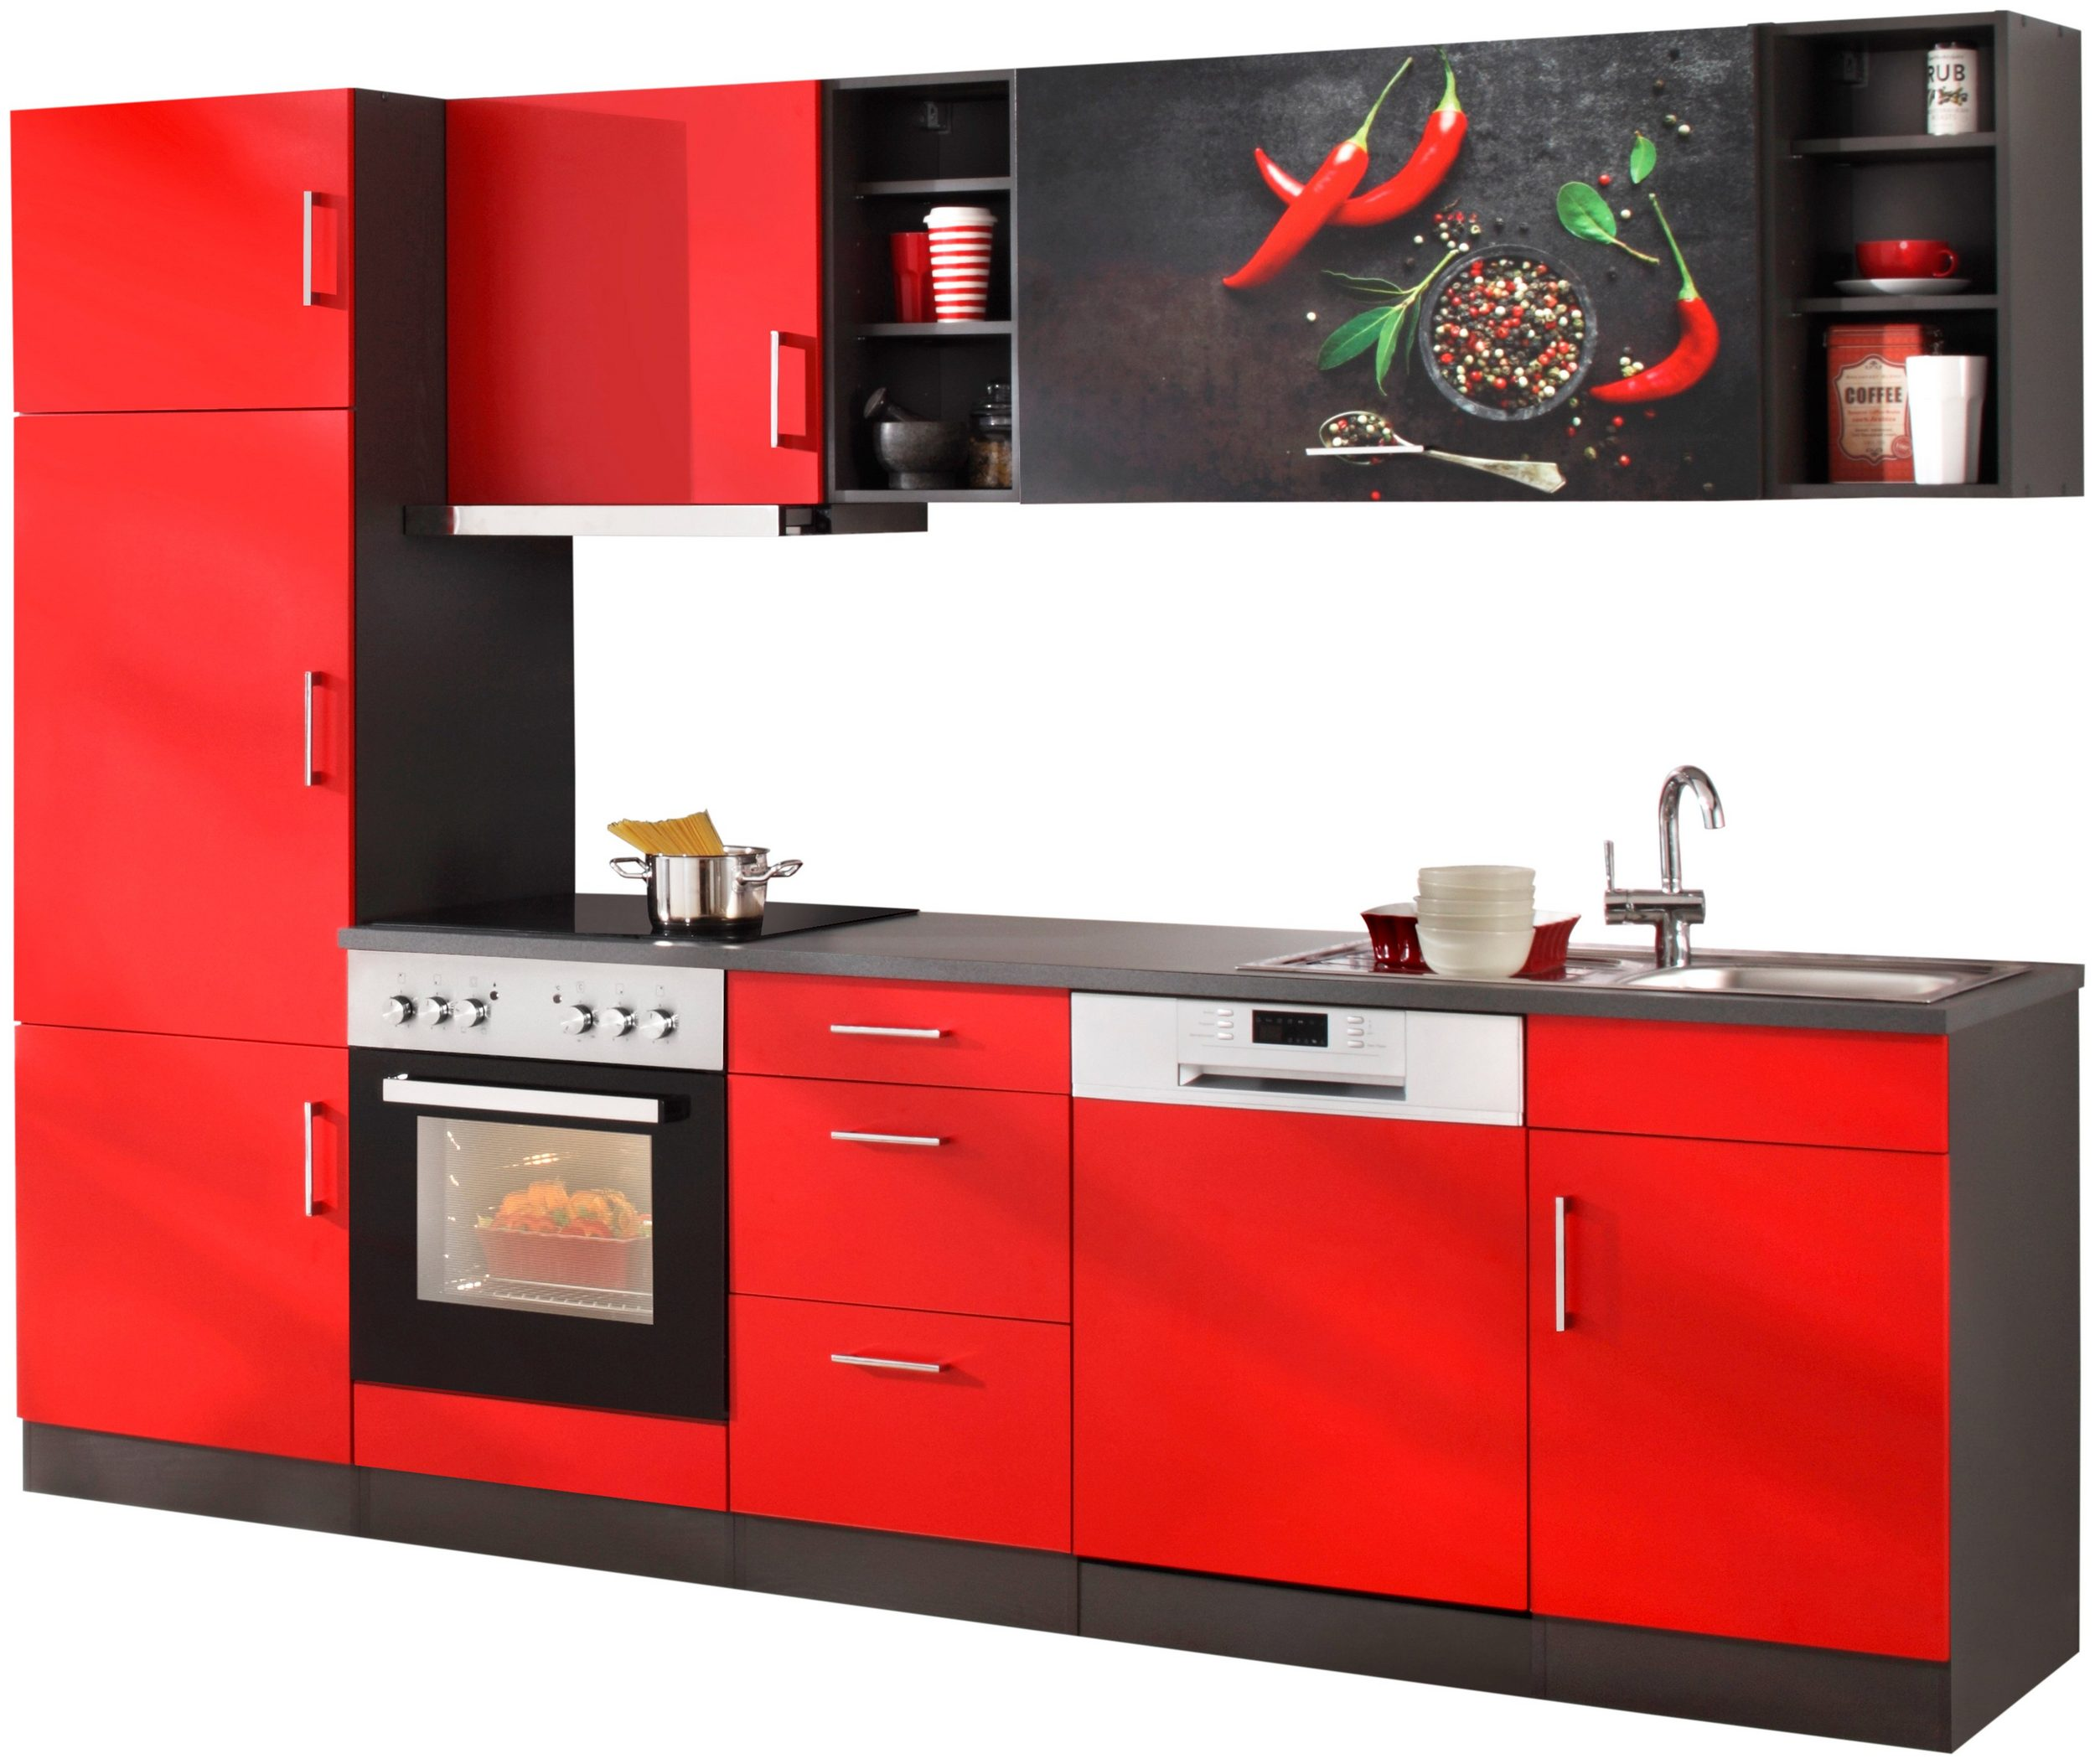 5348755288 Vimle Kitchen Cabinets HELD khmer in phnom penh cambodia